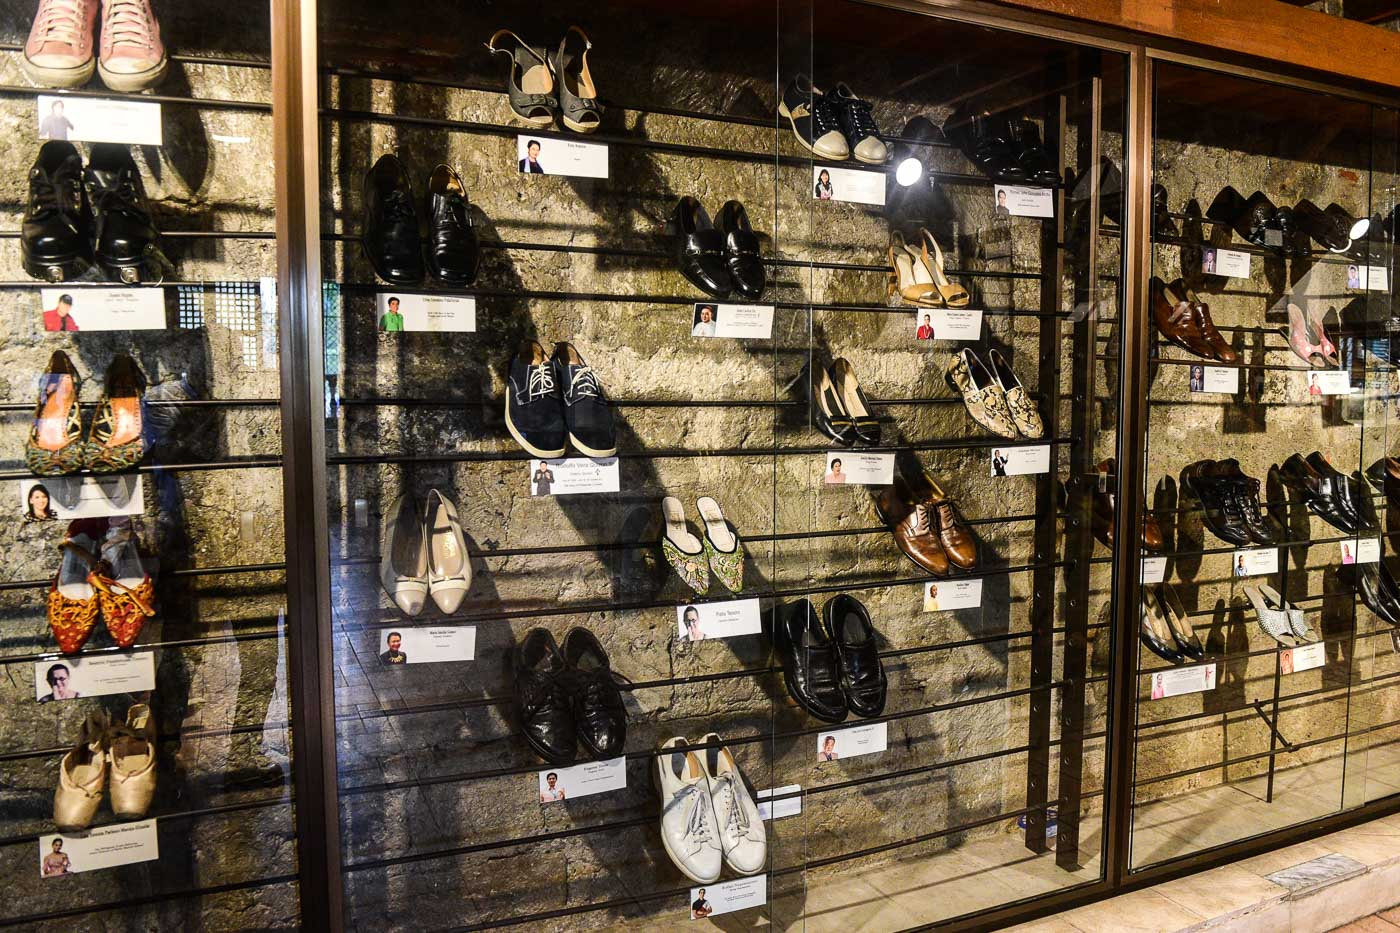 FAMOUS FOOTWEAR. The Marikina Shoe Museum features shoes from celebrities and politicians. Photo by LeAnne Jazul/Rappler